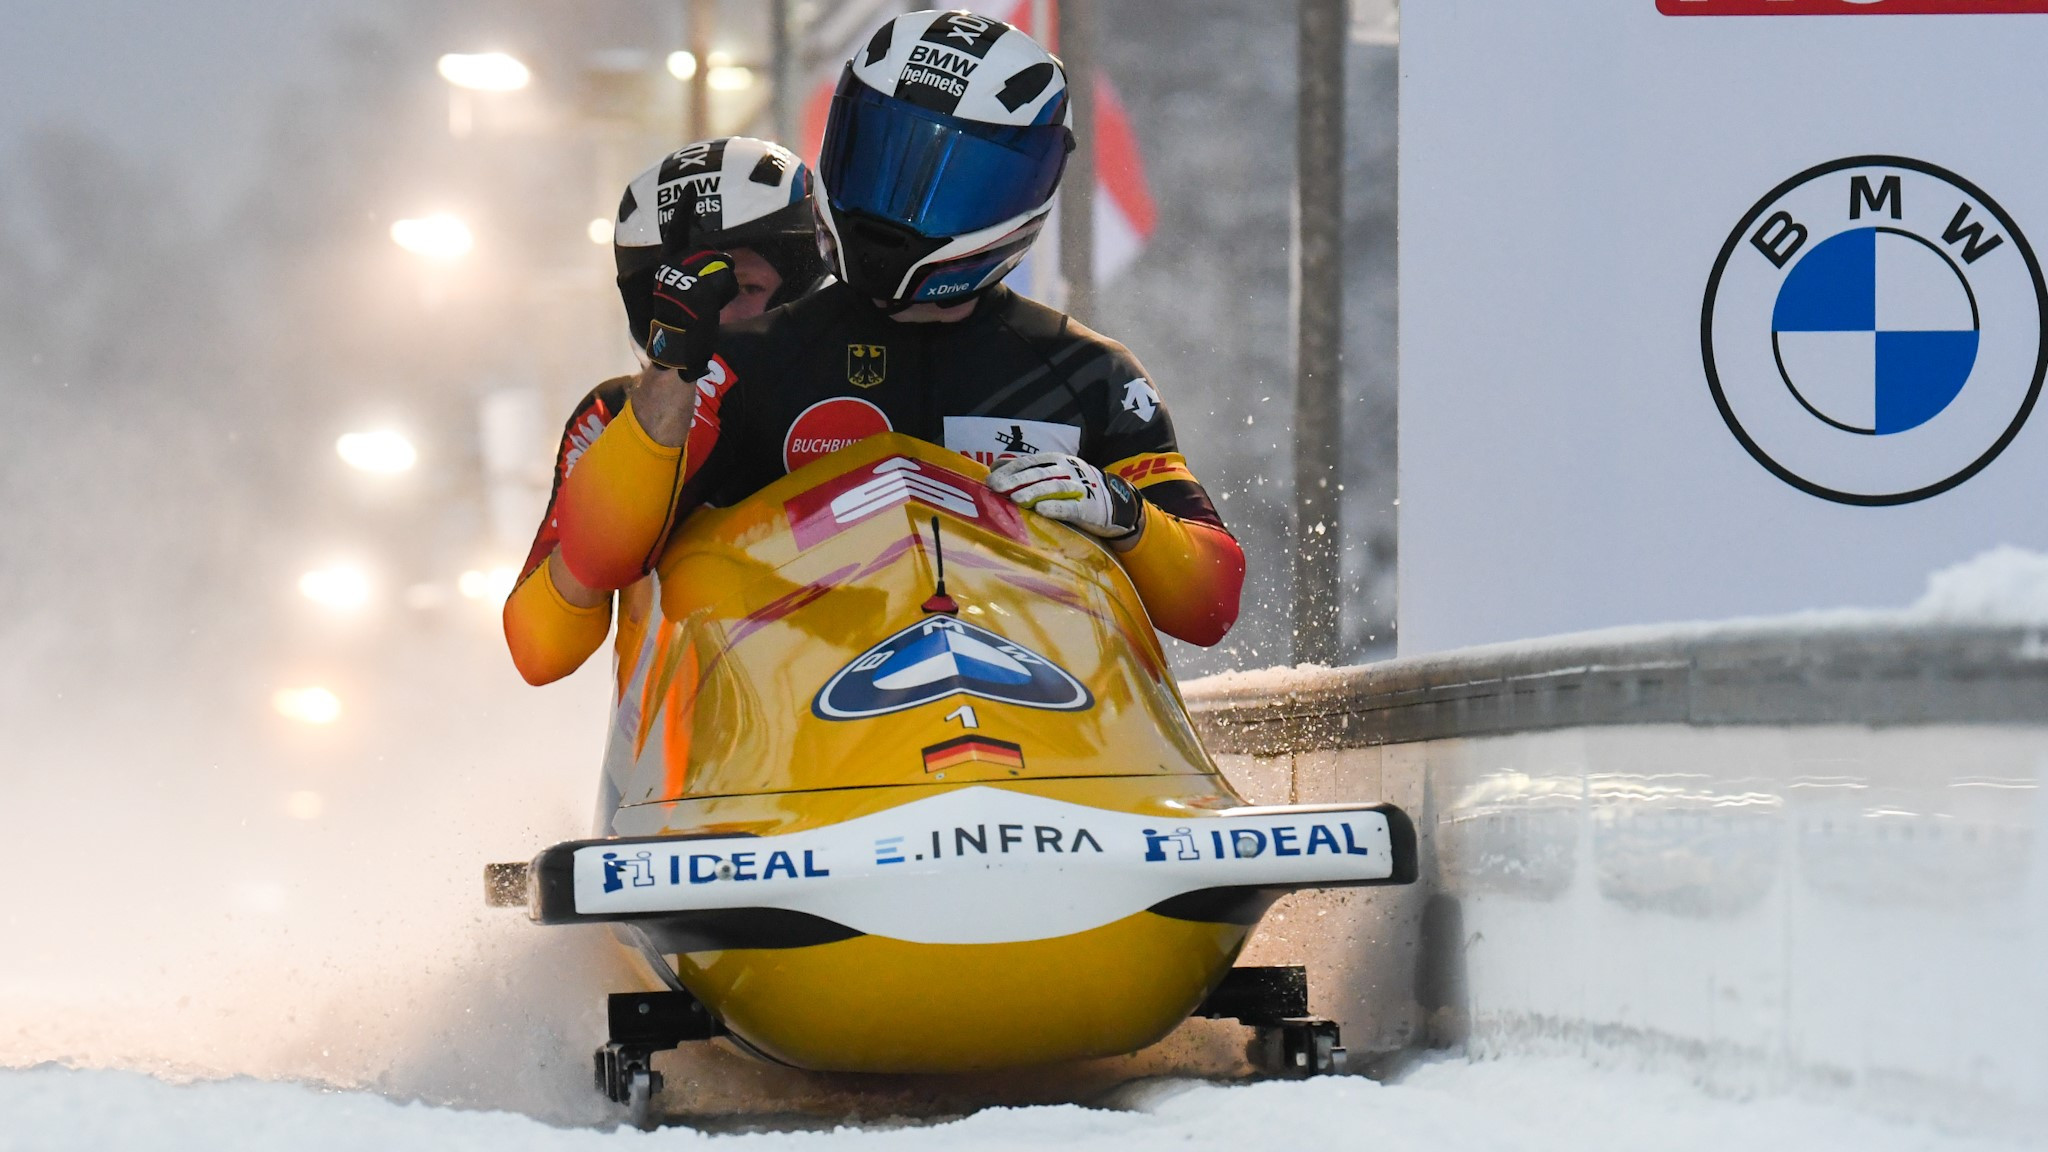 Friedrich breaks 55-year record with two-man bobsleigh gold at IBSF World Championships